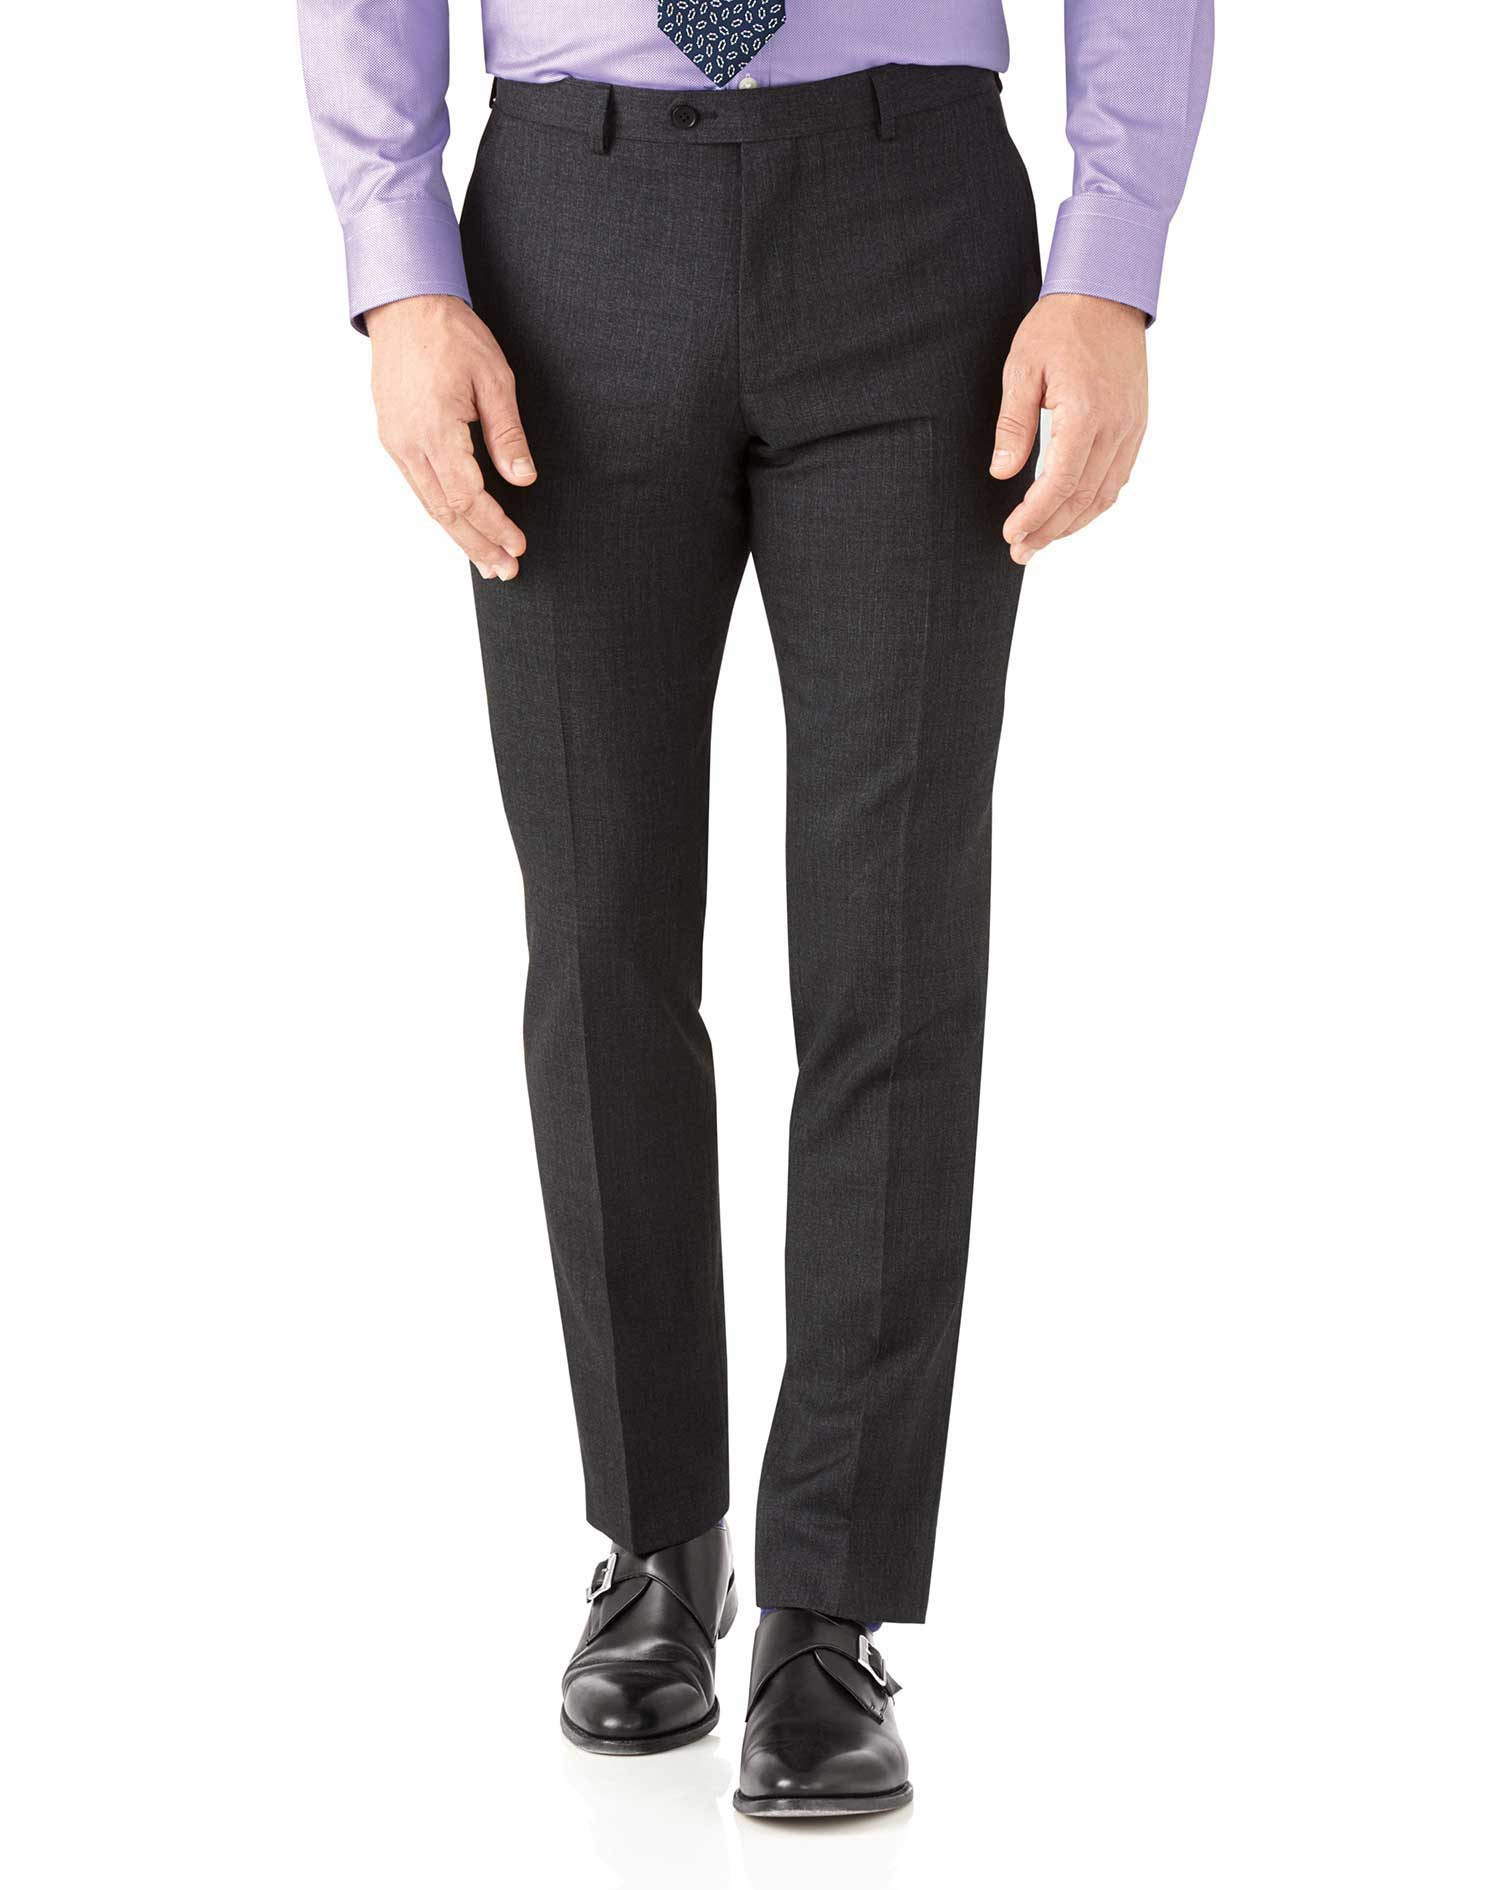 Charcoal Slim Fit Hairline Business Suit Trousers Size W36 L38 by Charles Tyrwhitt